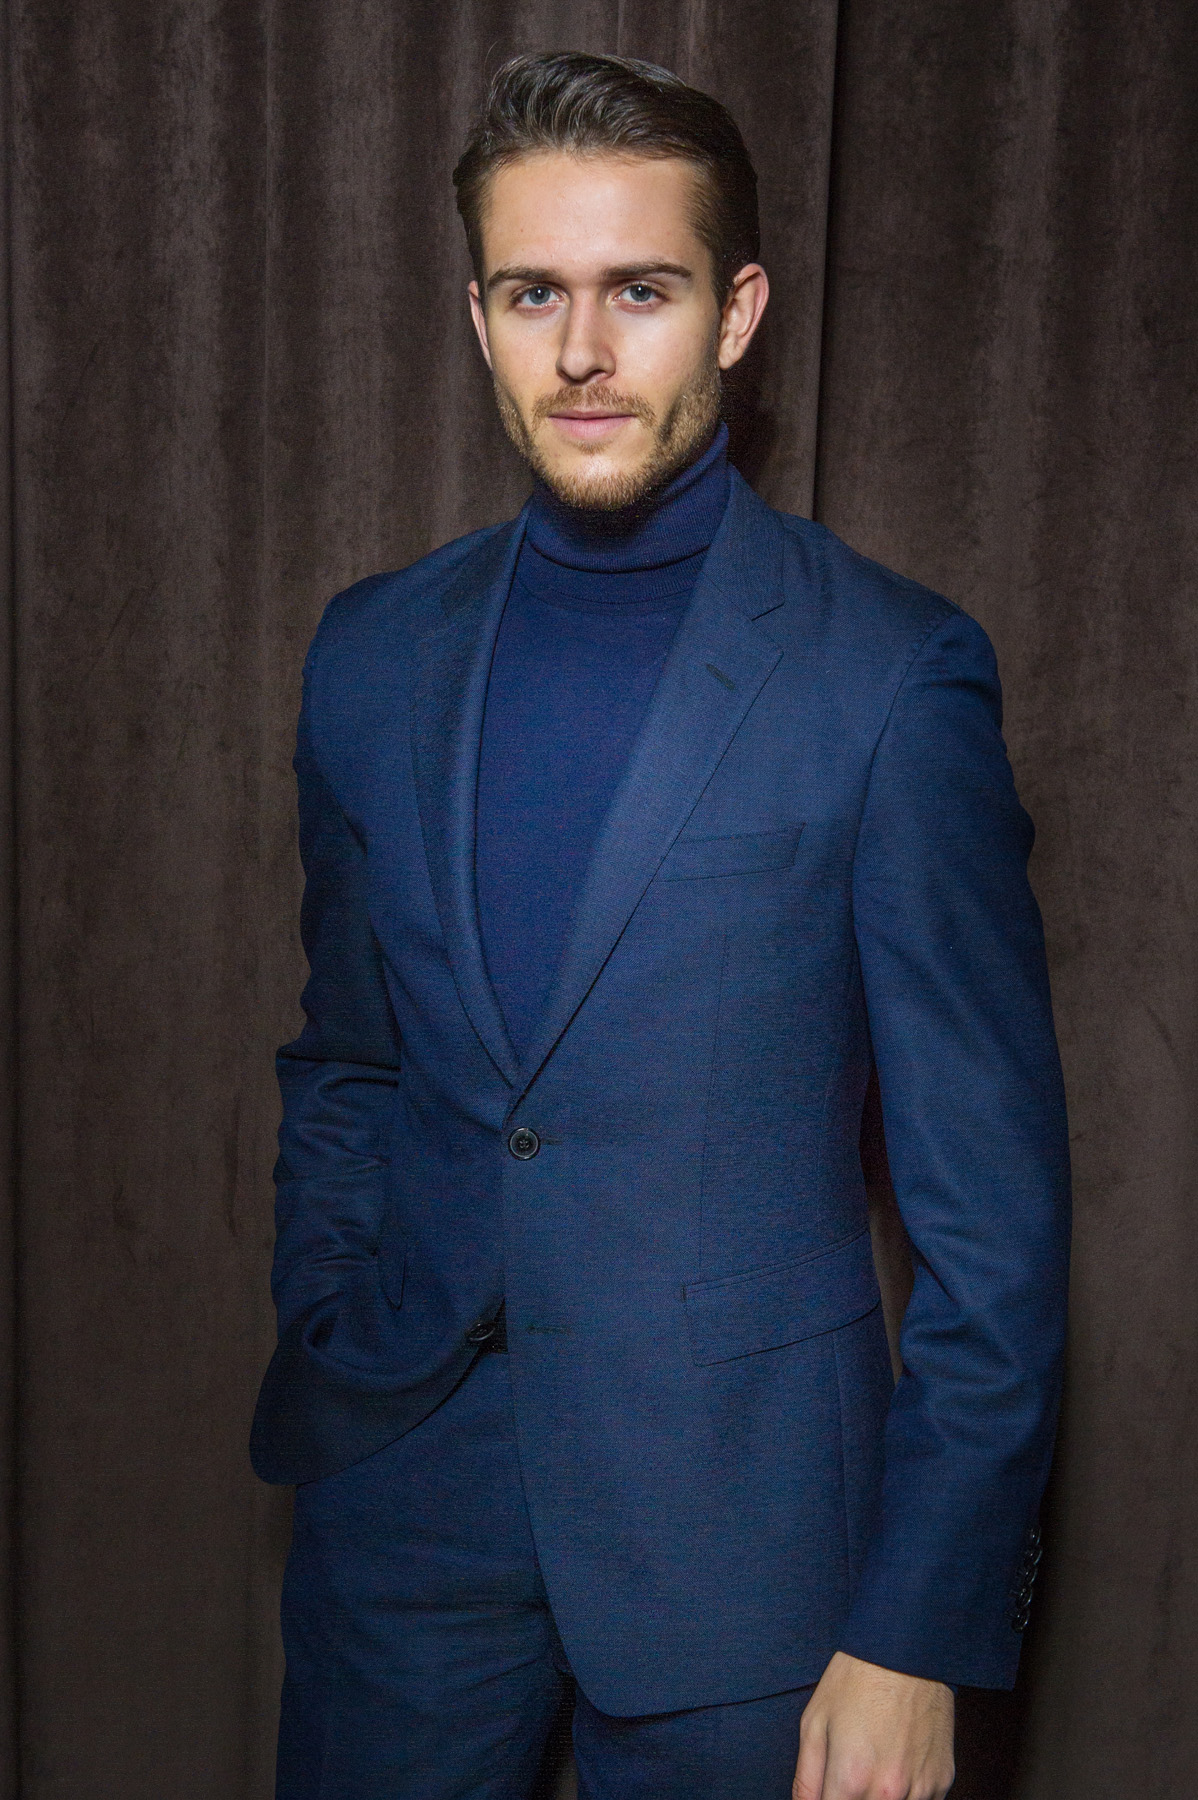 Adam Gallagher in HUGO BOSS at the BOSS Menswear Fall/Winter 2017 collection presentation